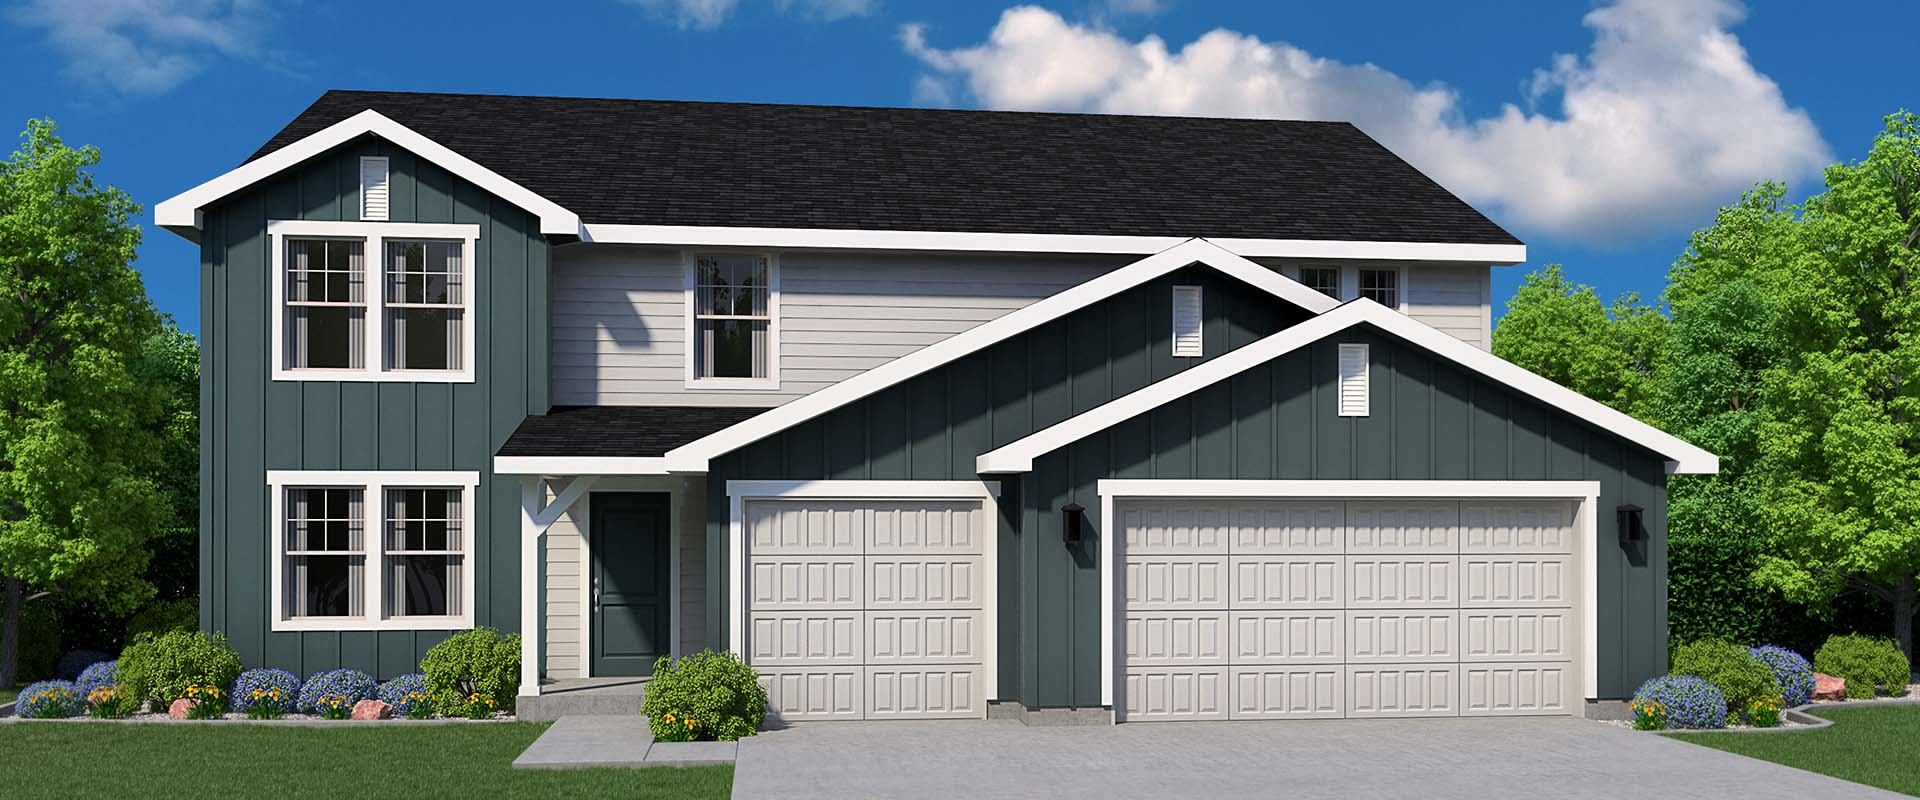 new-homes-boise-idaho-hubble-homes_0040_Agate Traditional 3rd Car pack 36.jpg